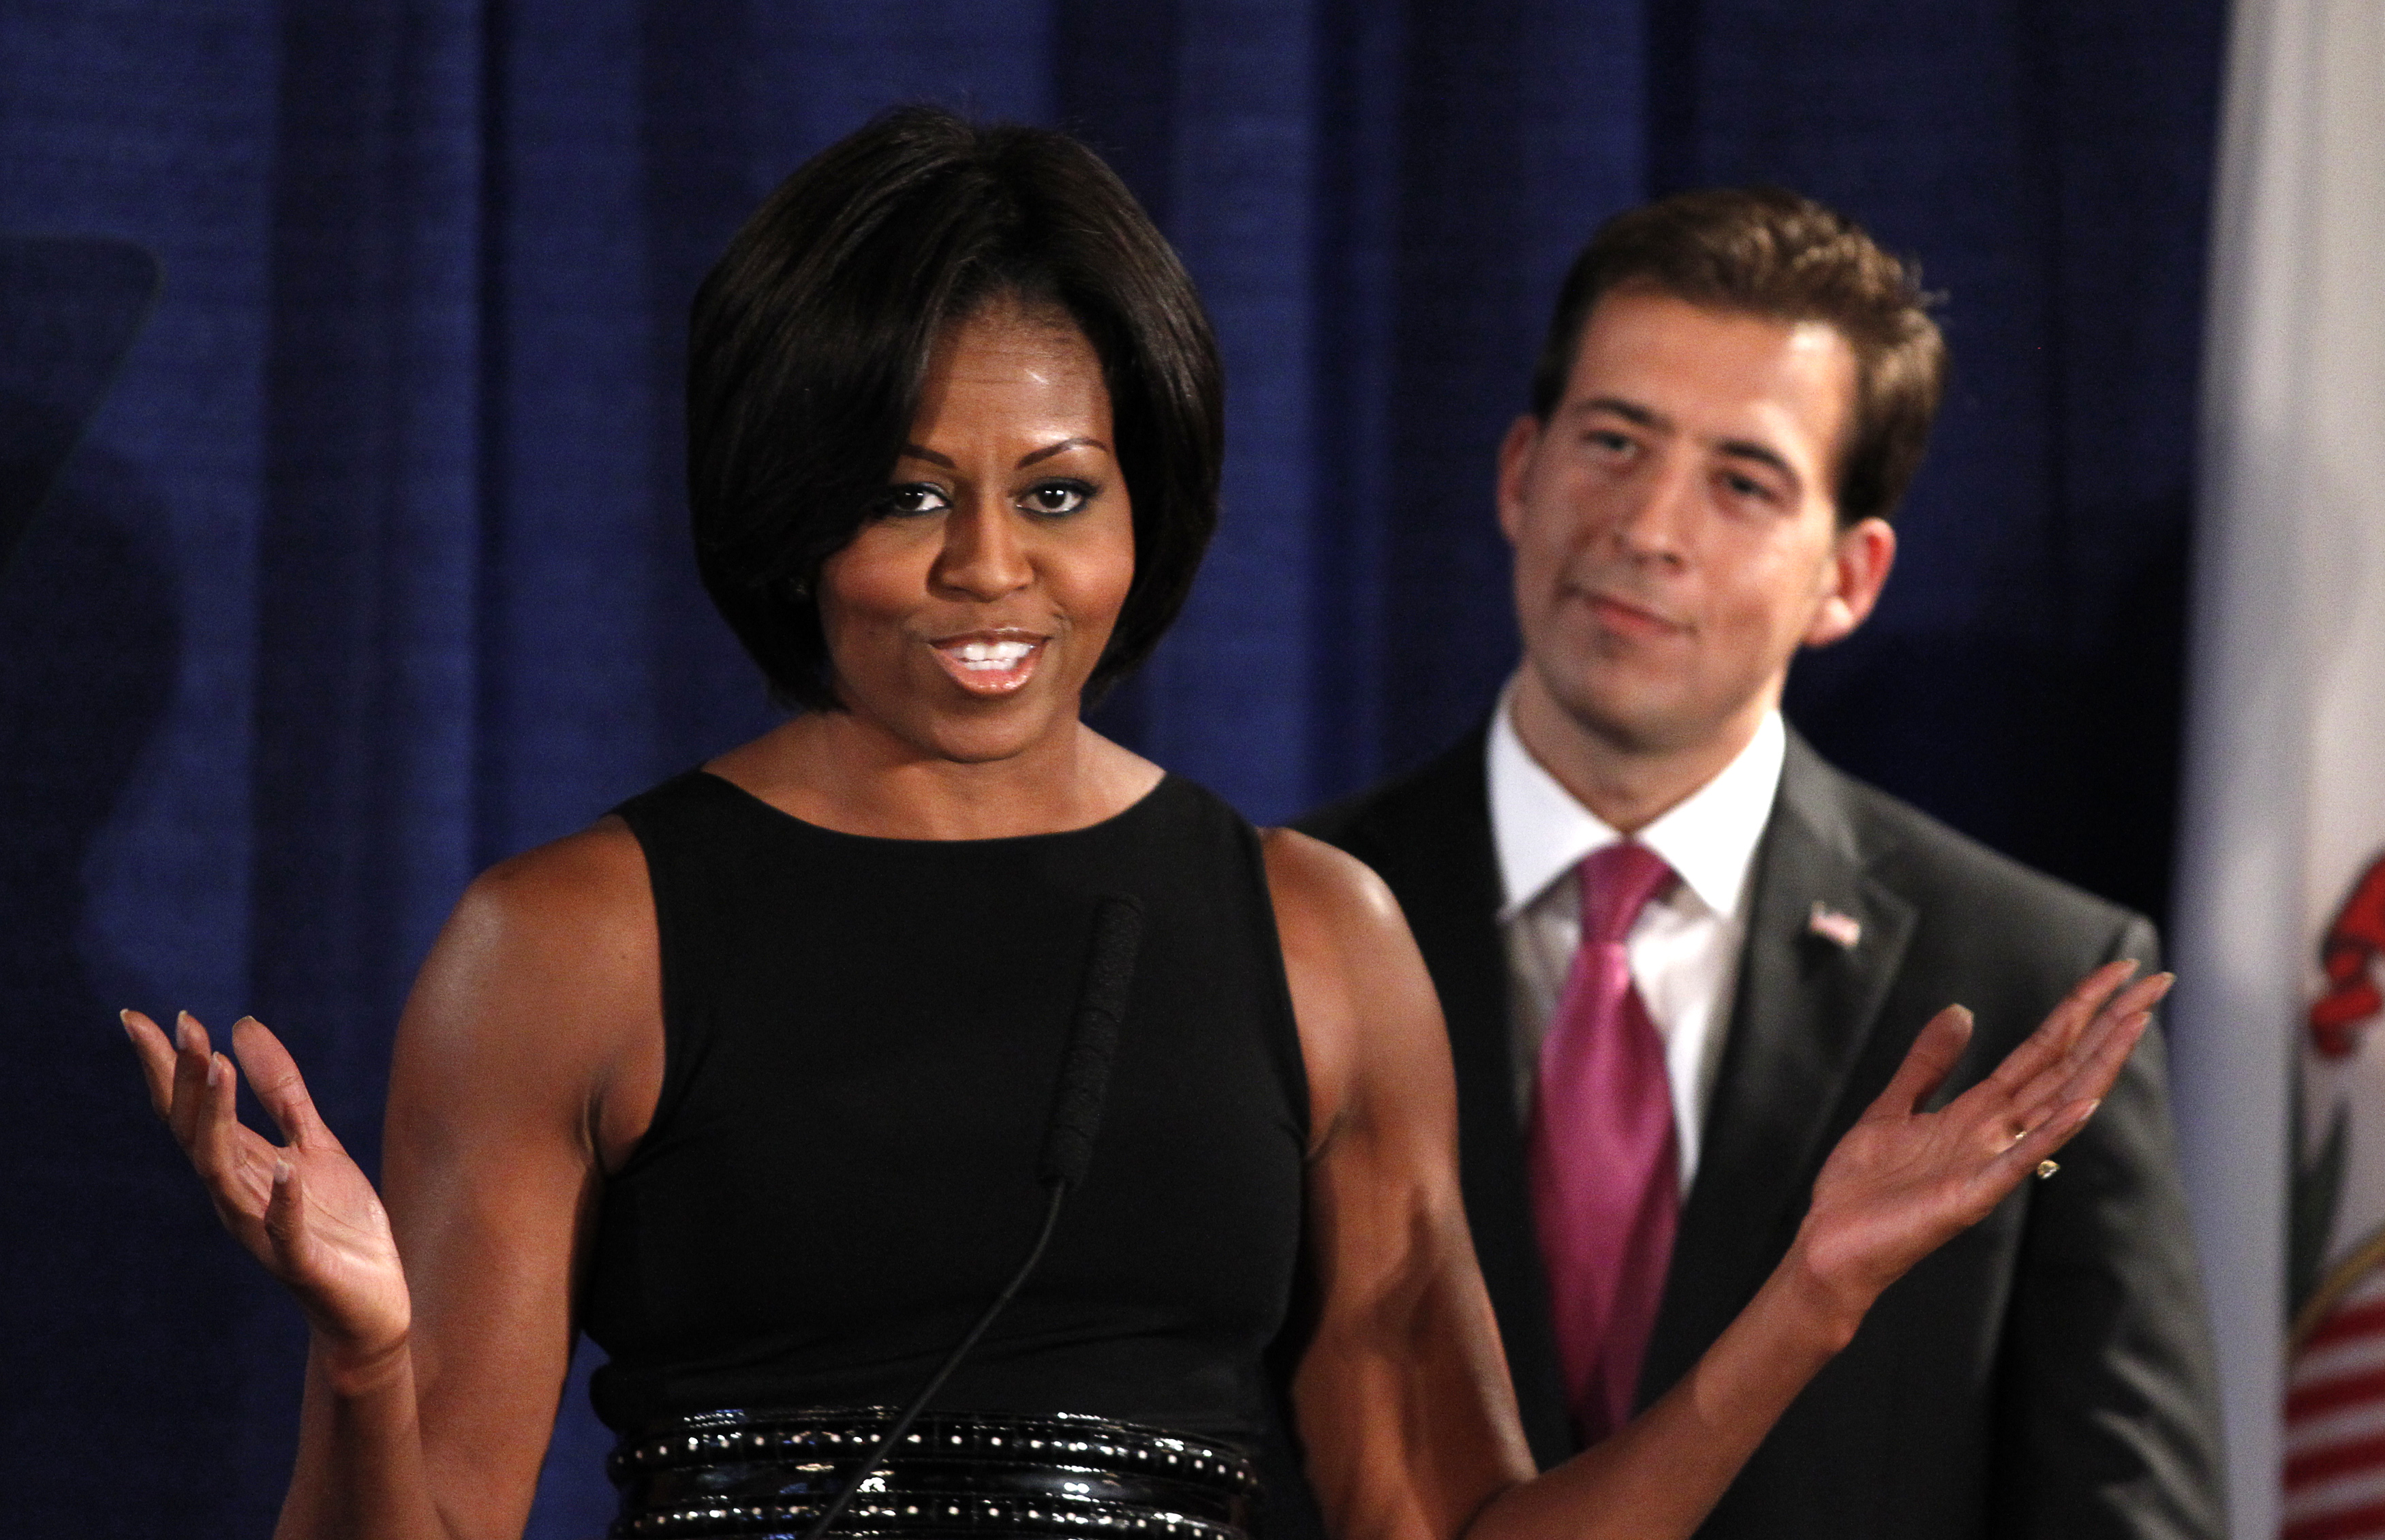 Michelle Obama Campaigns For Illinois Senate Candidate Alexi Giannoulias